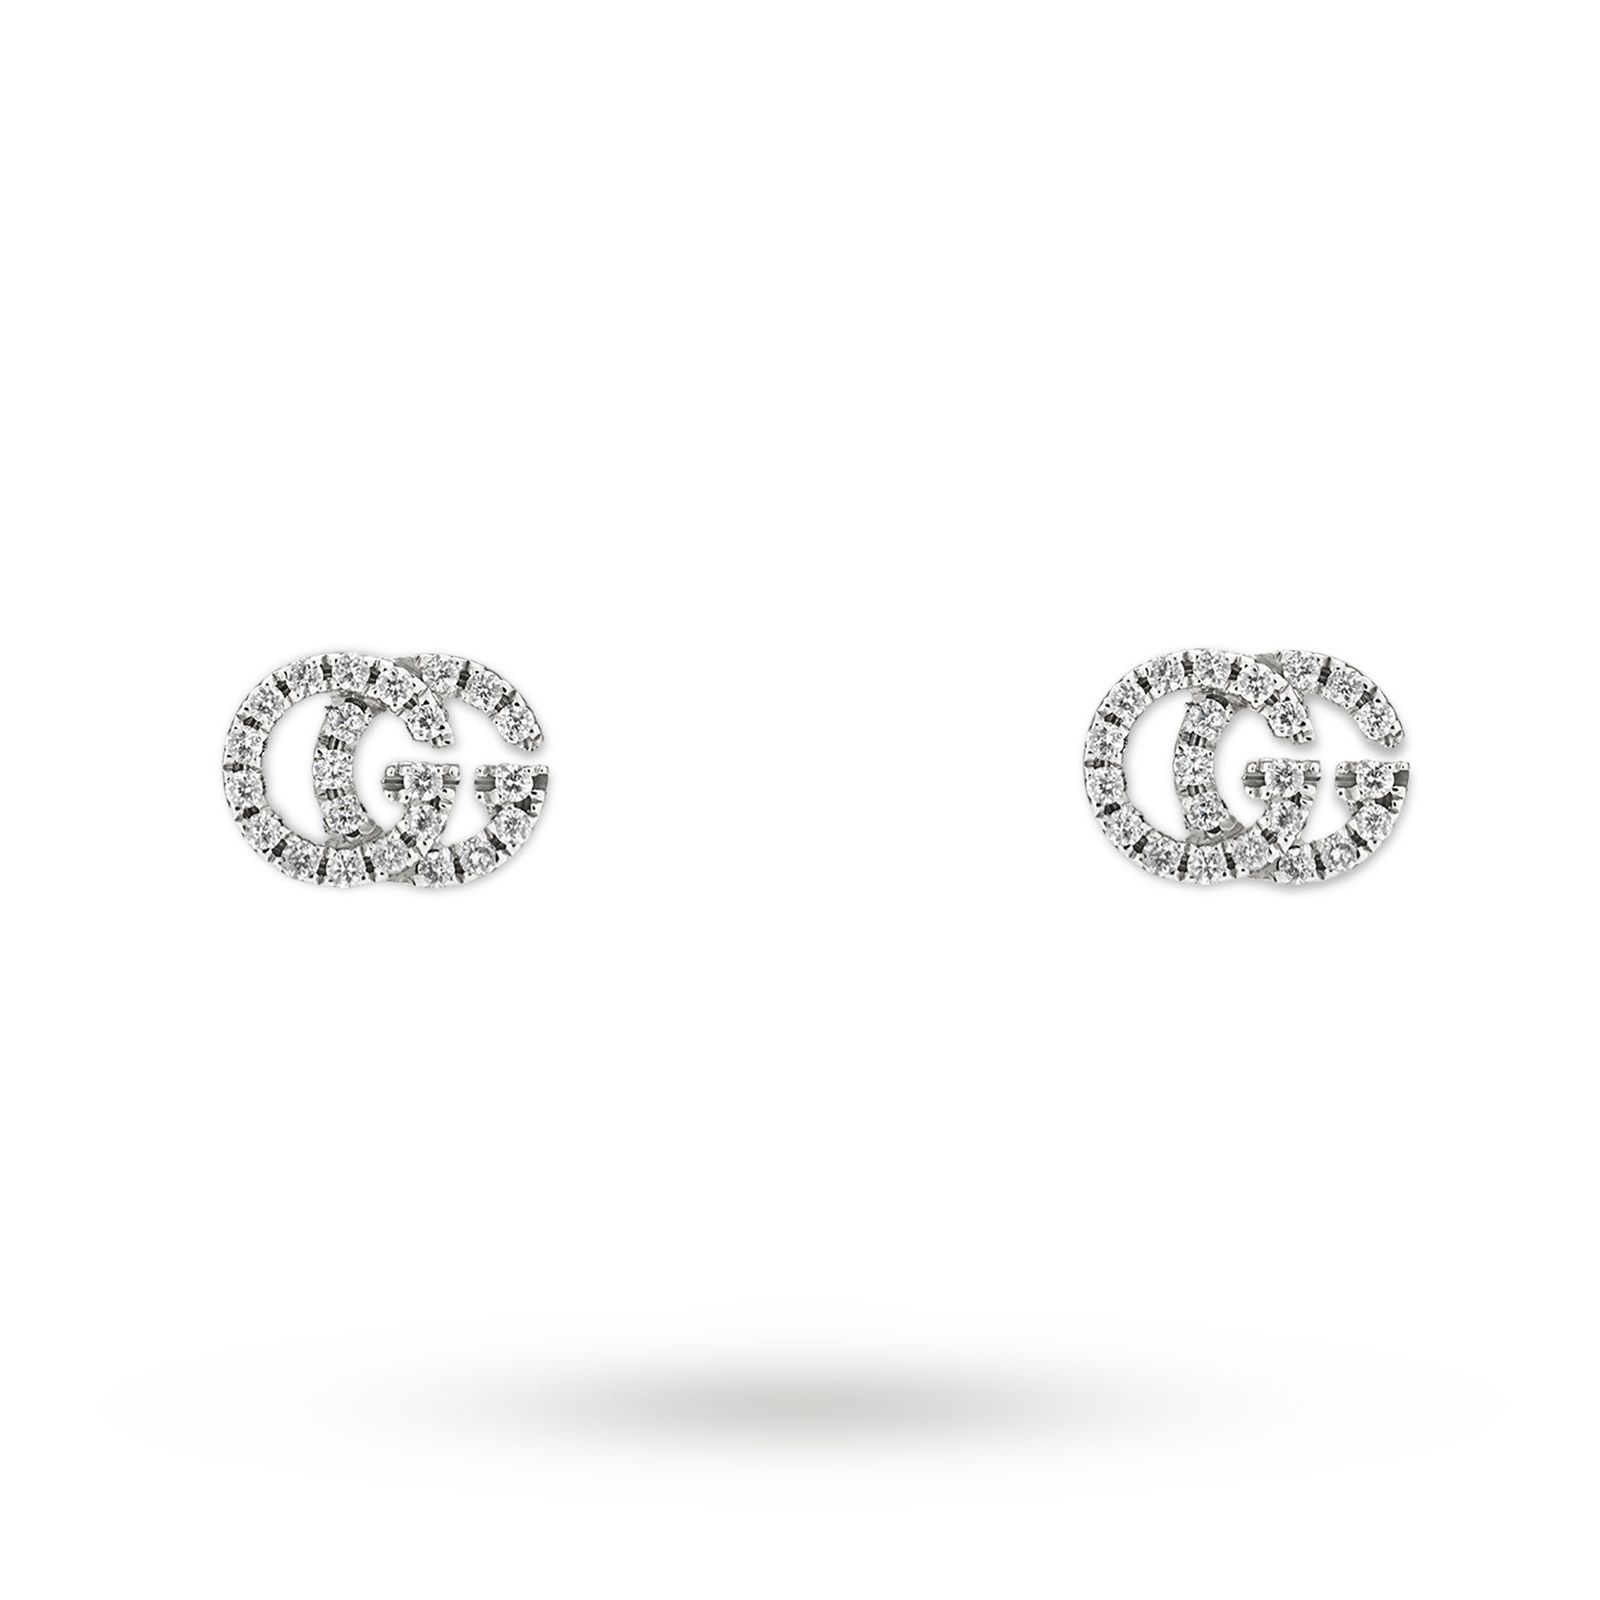 Gucci Running G Pave 18ct White Gold Diamond Stud Earrings Jewellery Goldsmiths